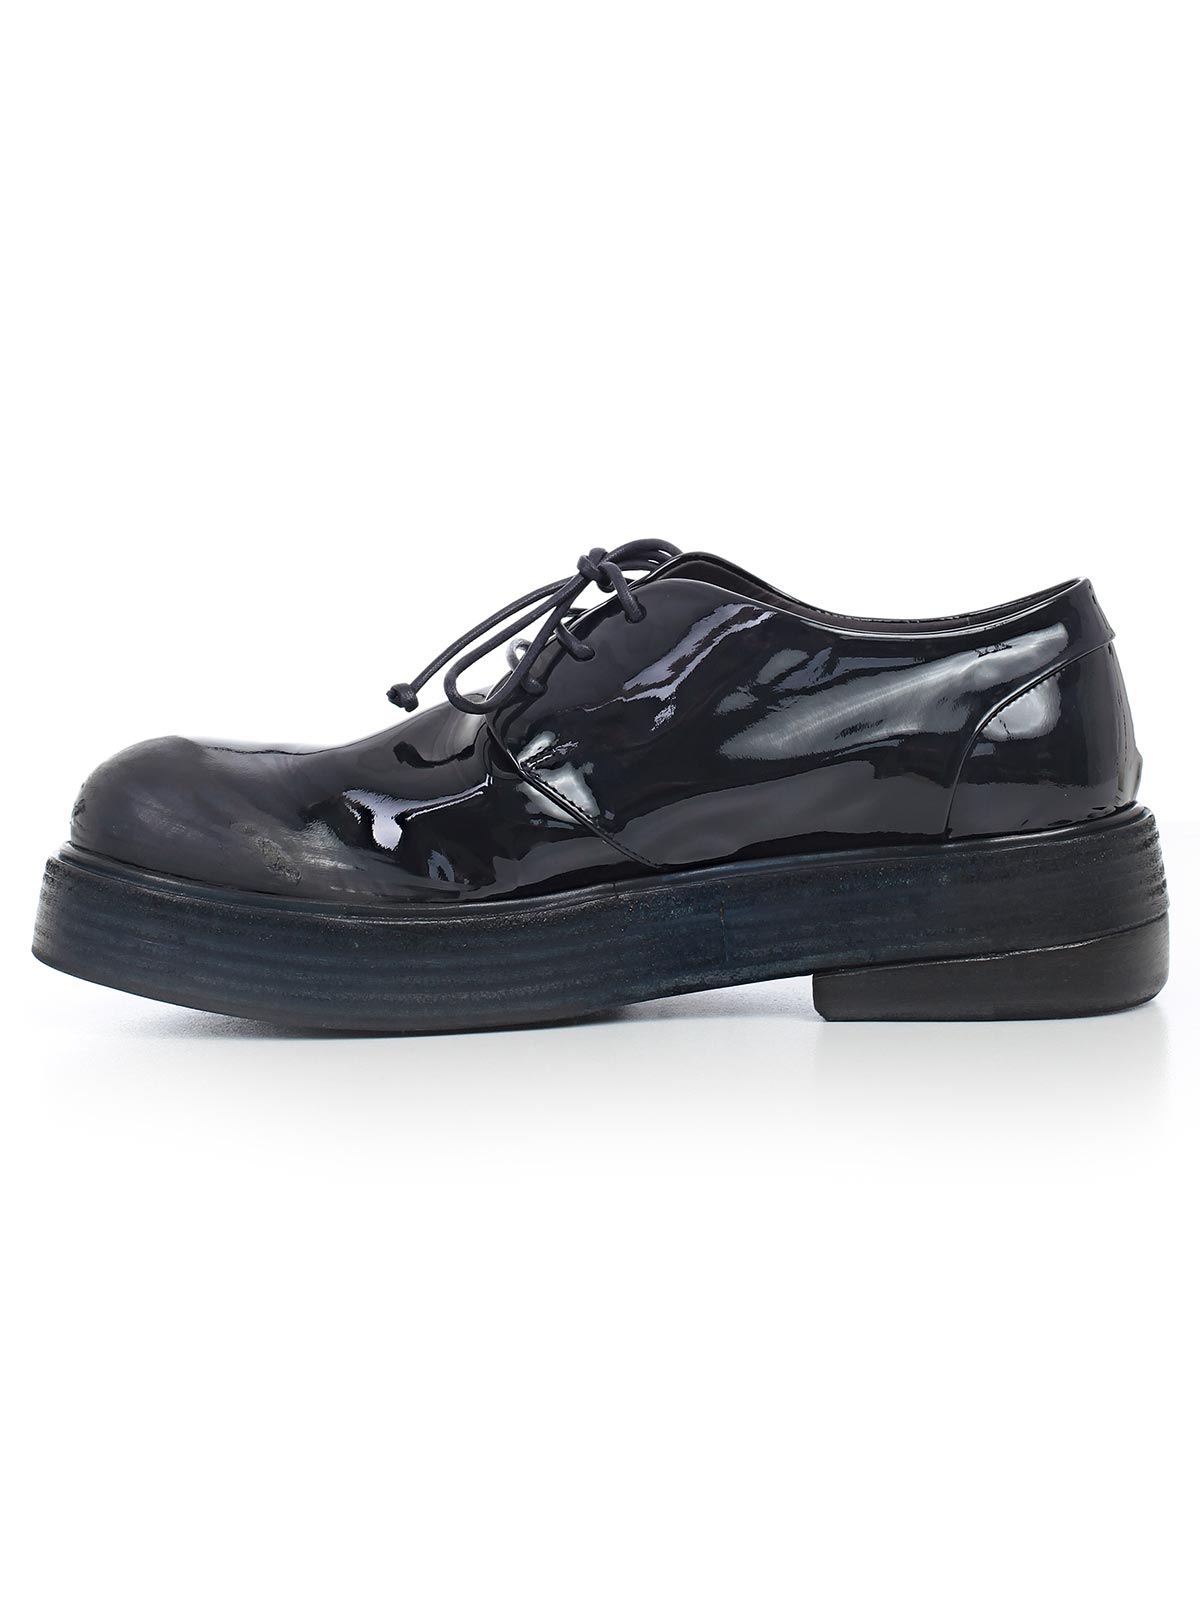 Picture of Marsell Lace Ups Shoes